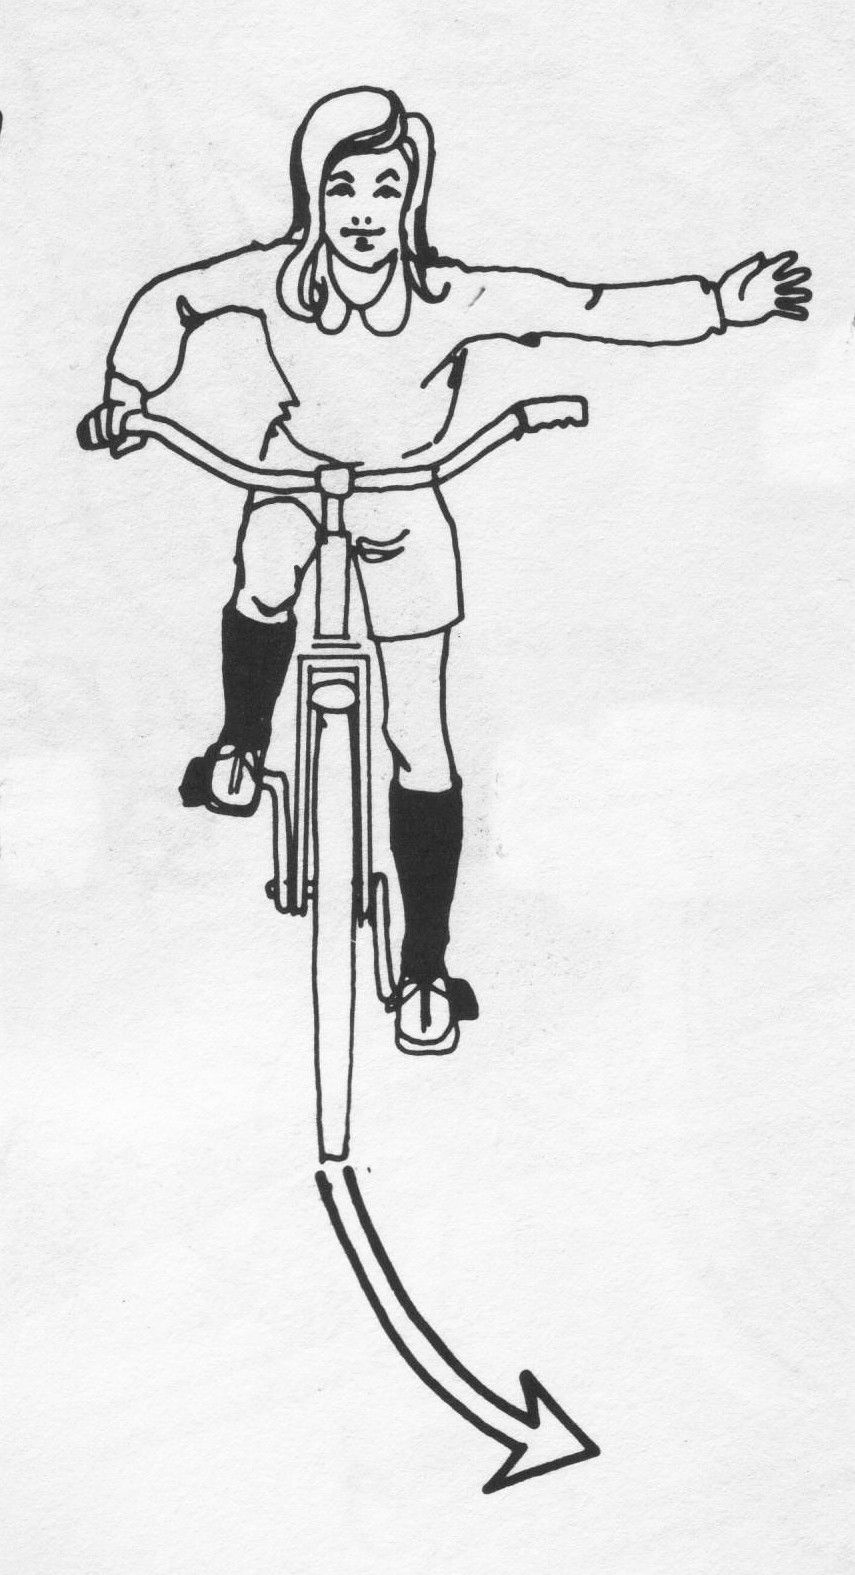 Image may contain: Building, Drawing, Art, Bicycle, Vehicle, Bike, Transportation, Human, Person